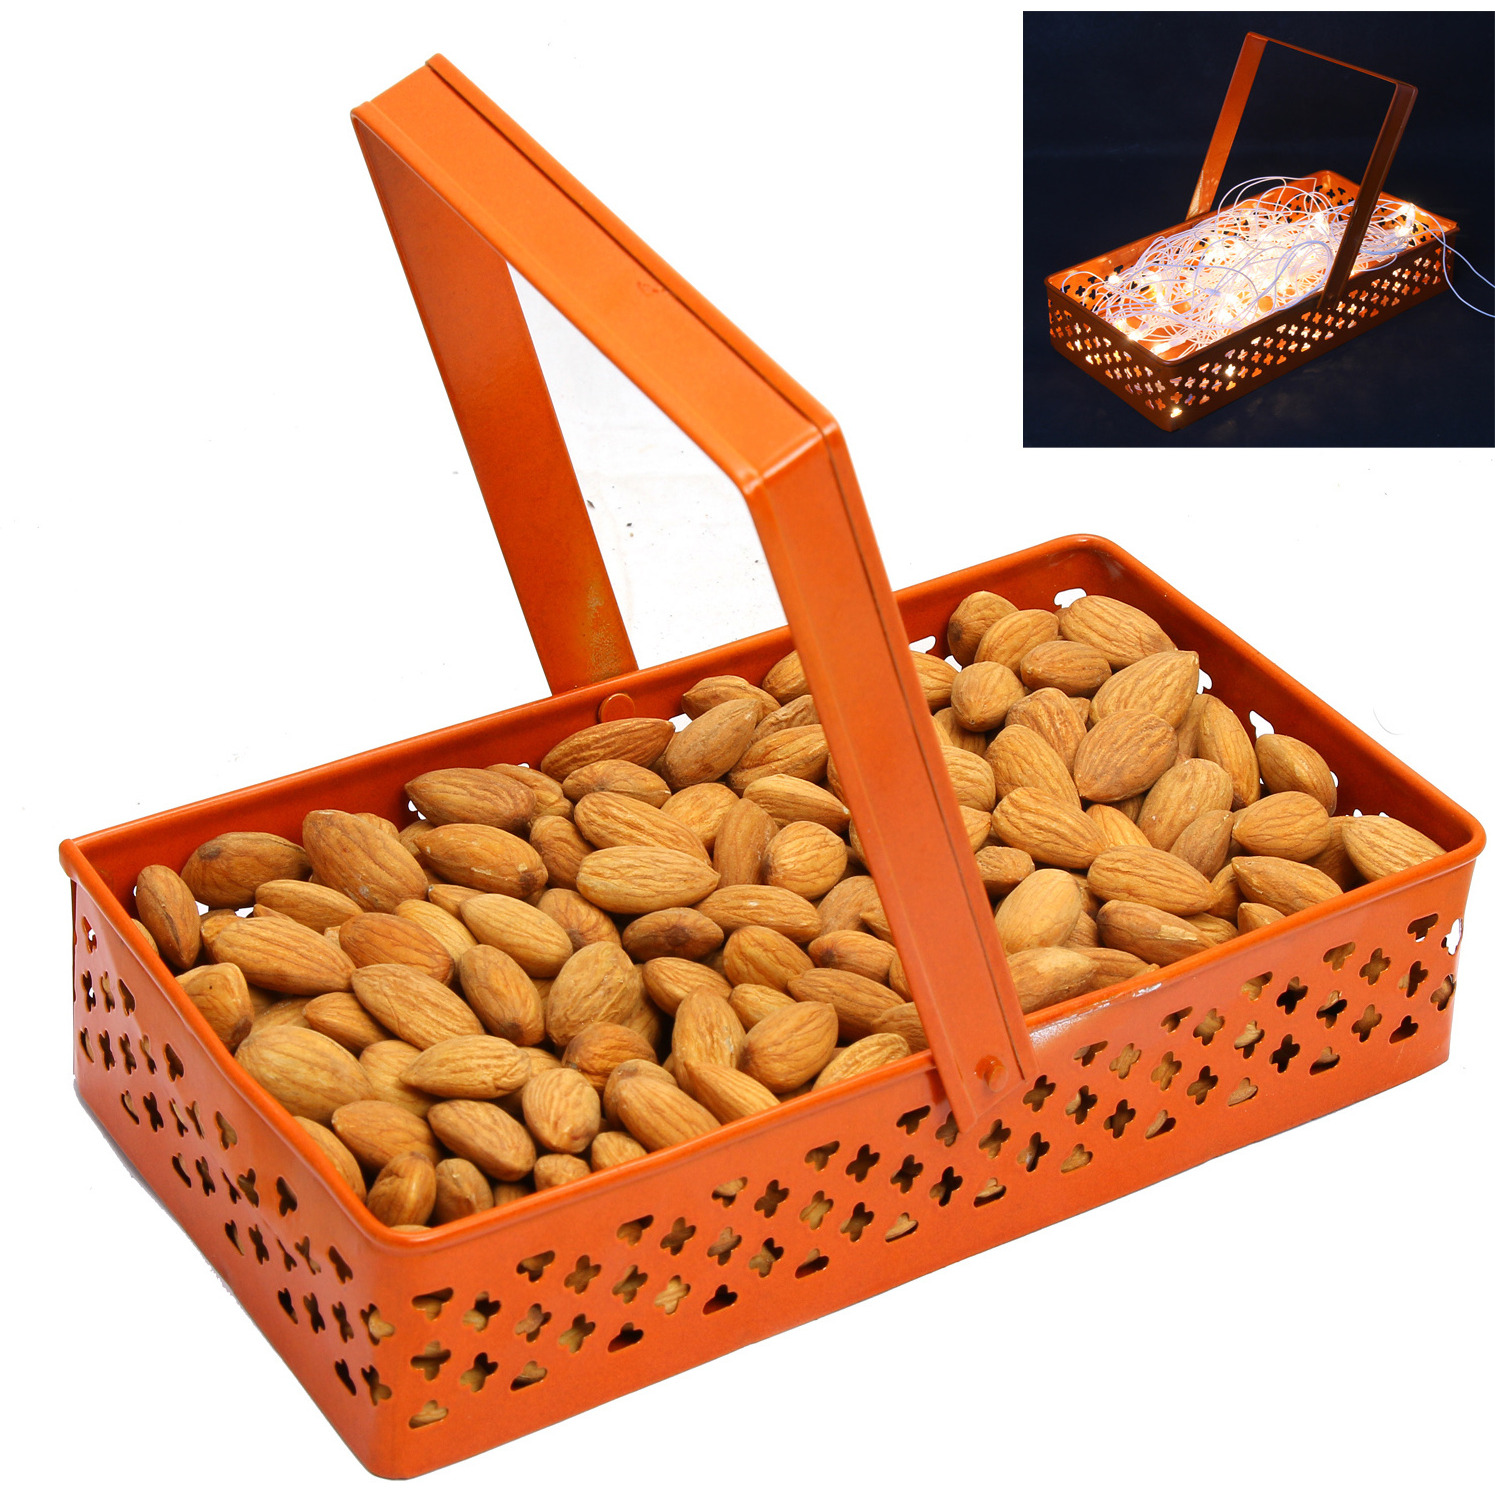 Hampers- Rectangle Orange Metal Basket With Almonds